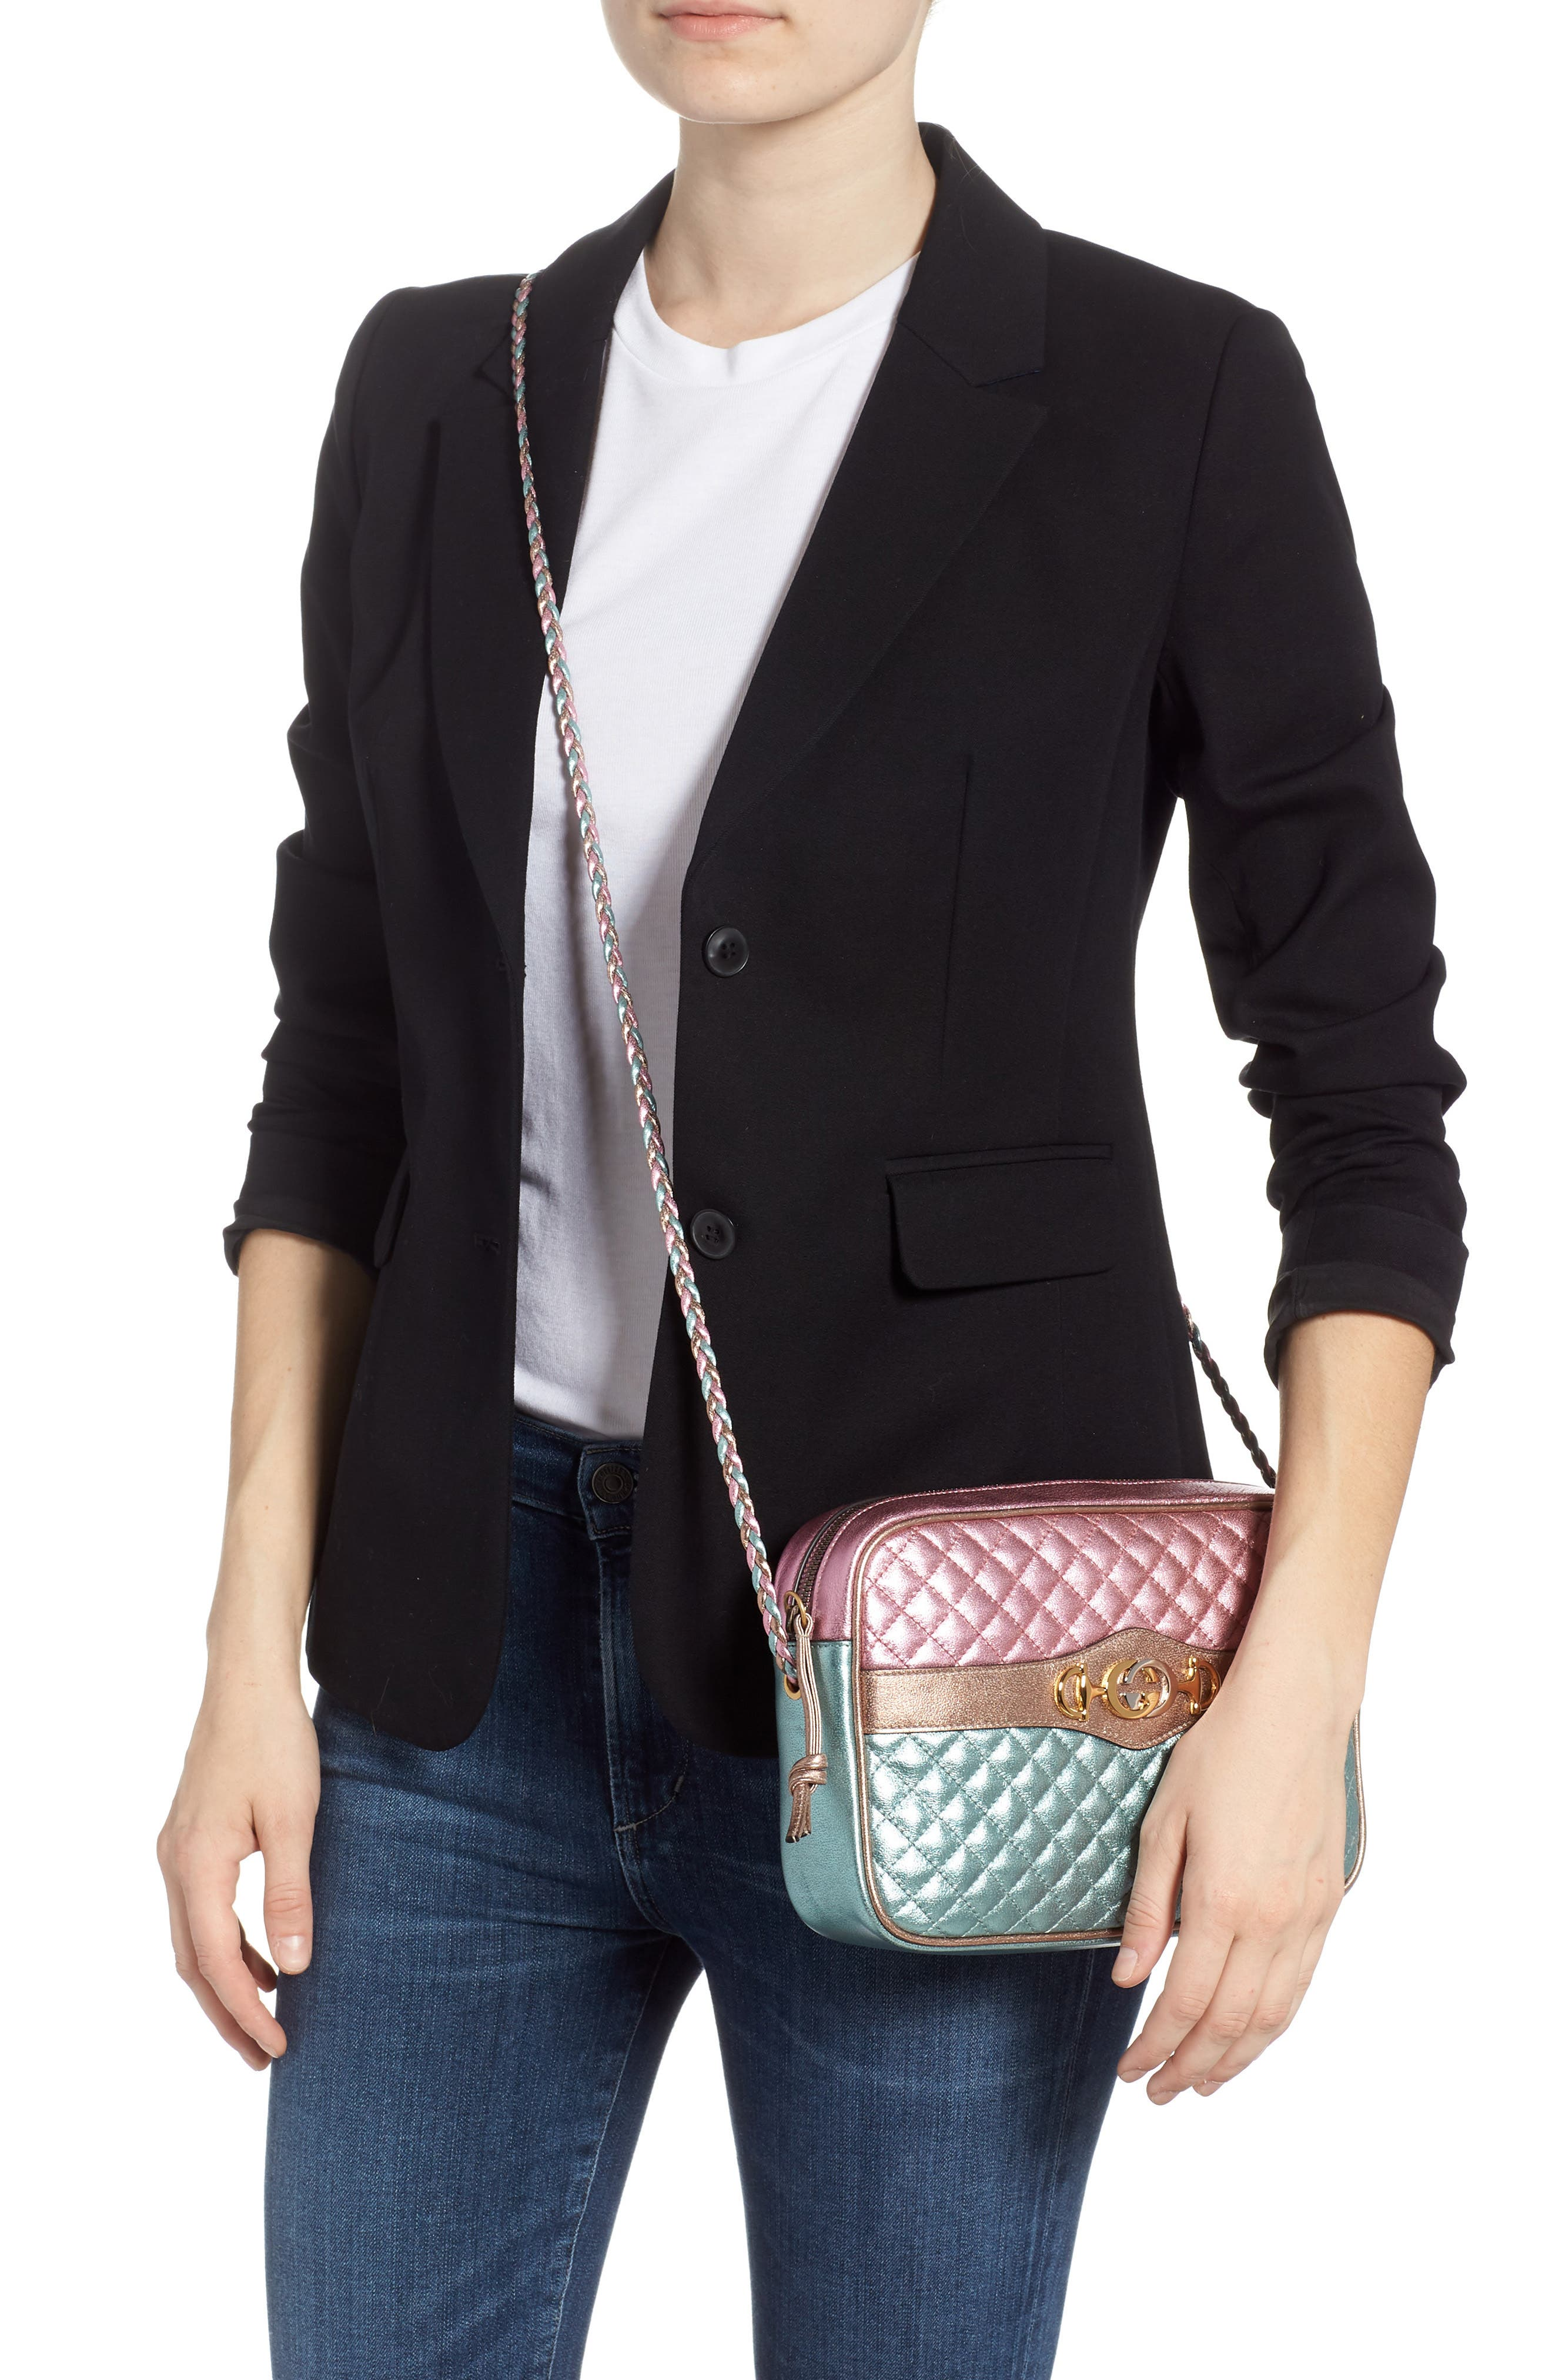 GUCCI, Small Quilted Metallic Leather Shoulder Bag, Alternate thumbnail 2, color, ROSE/ BLUE